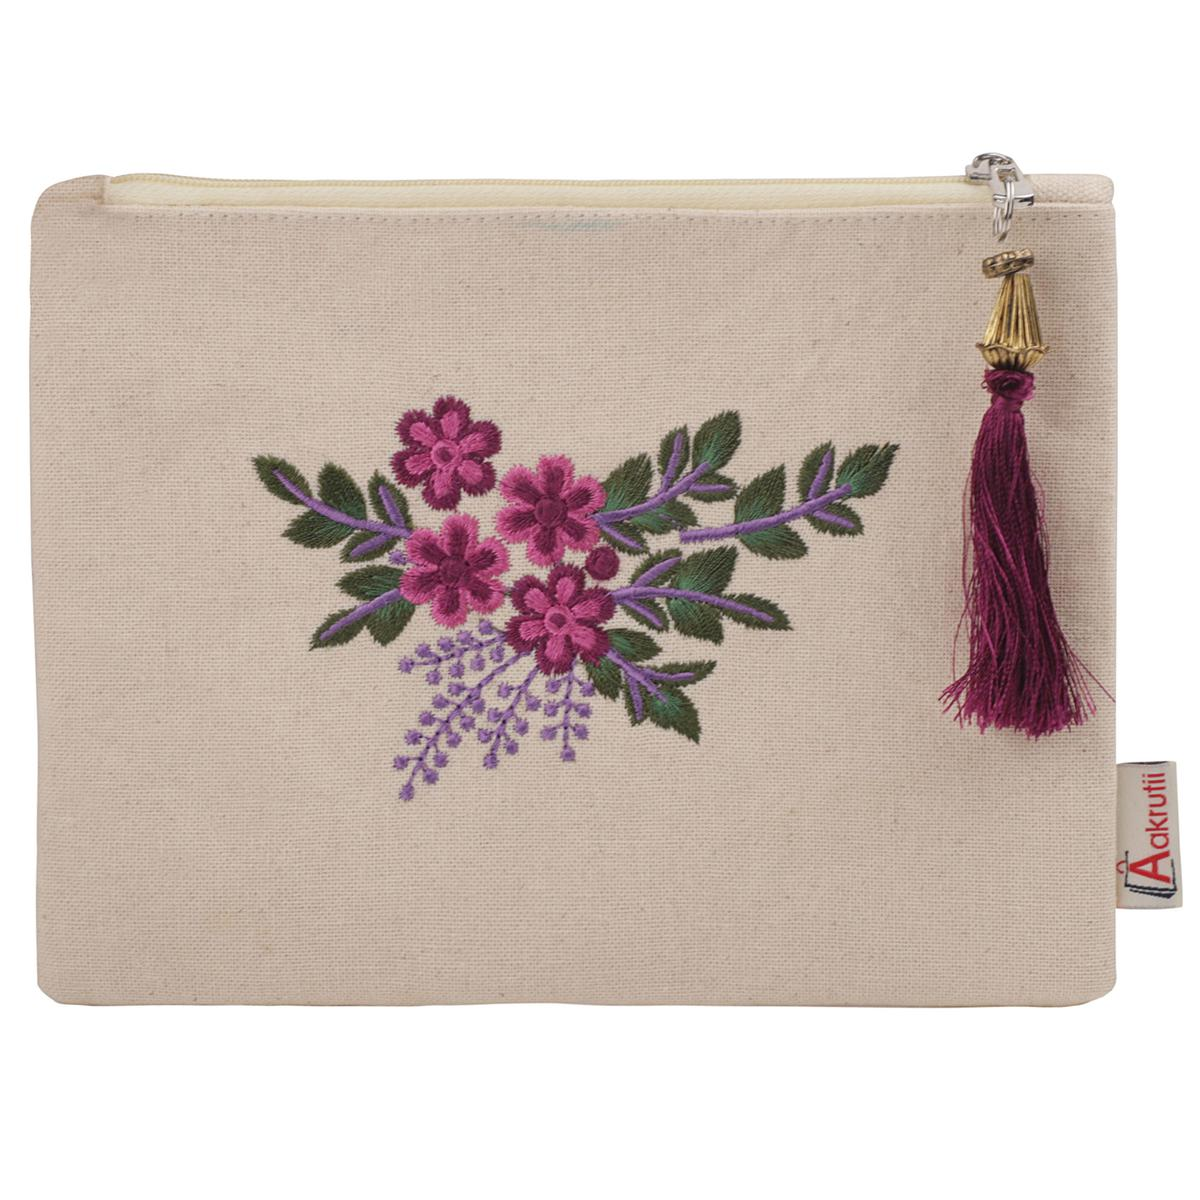 Aakrutii - Women's Eco Friendly Cotton Zipper Pouch Wallet (Pink and Purple)